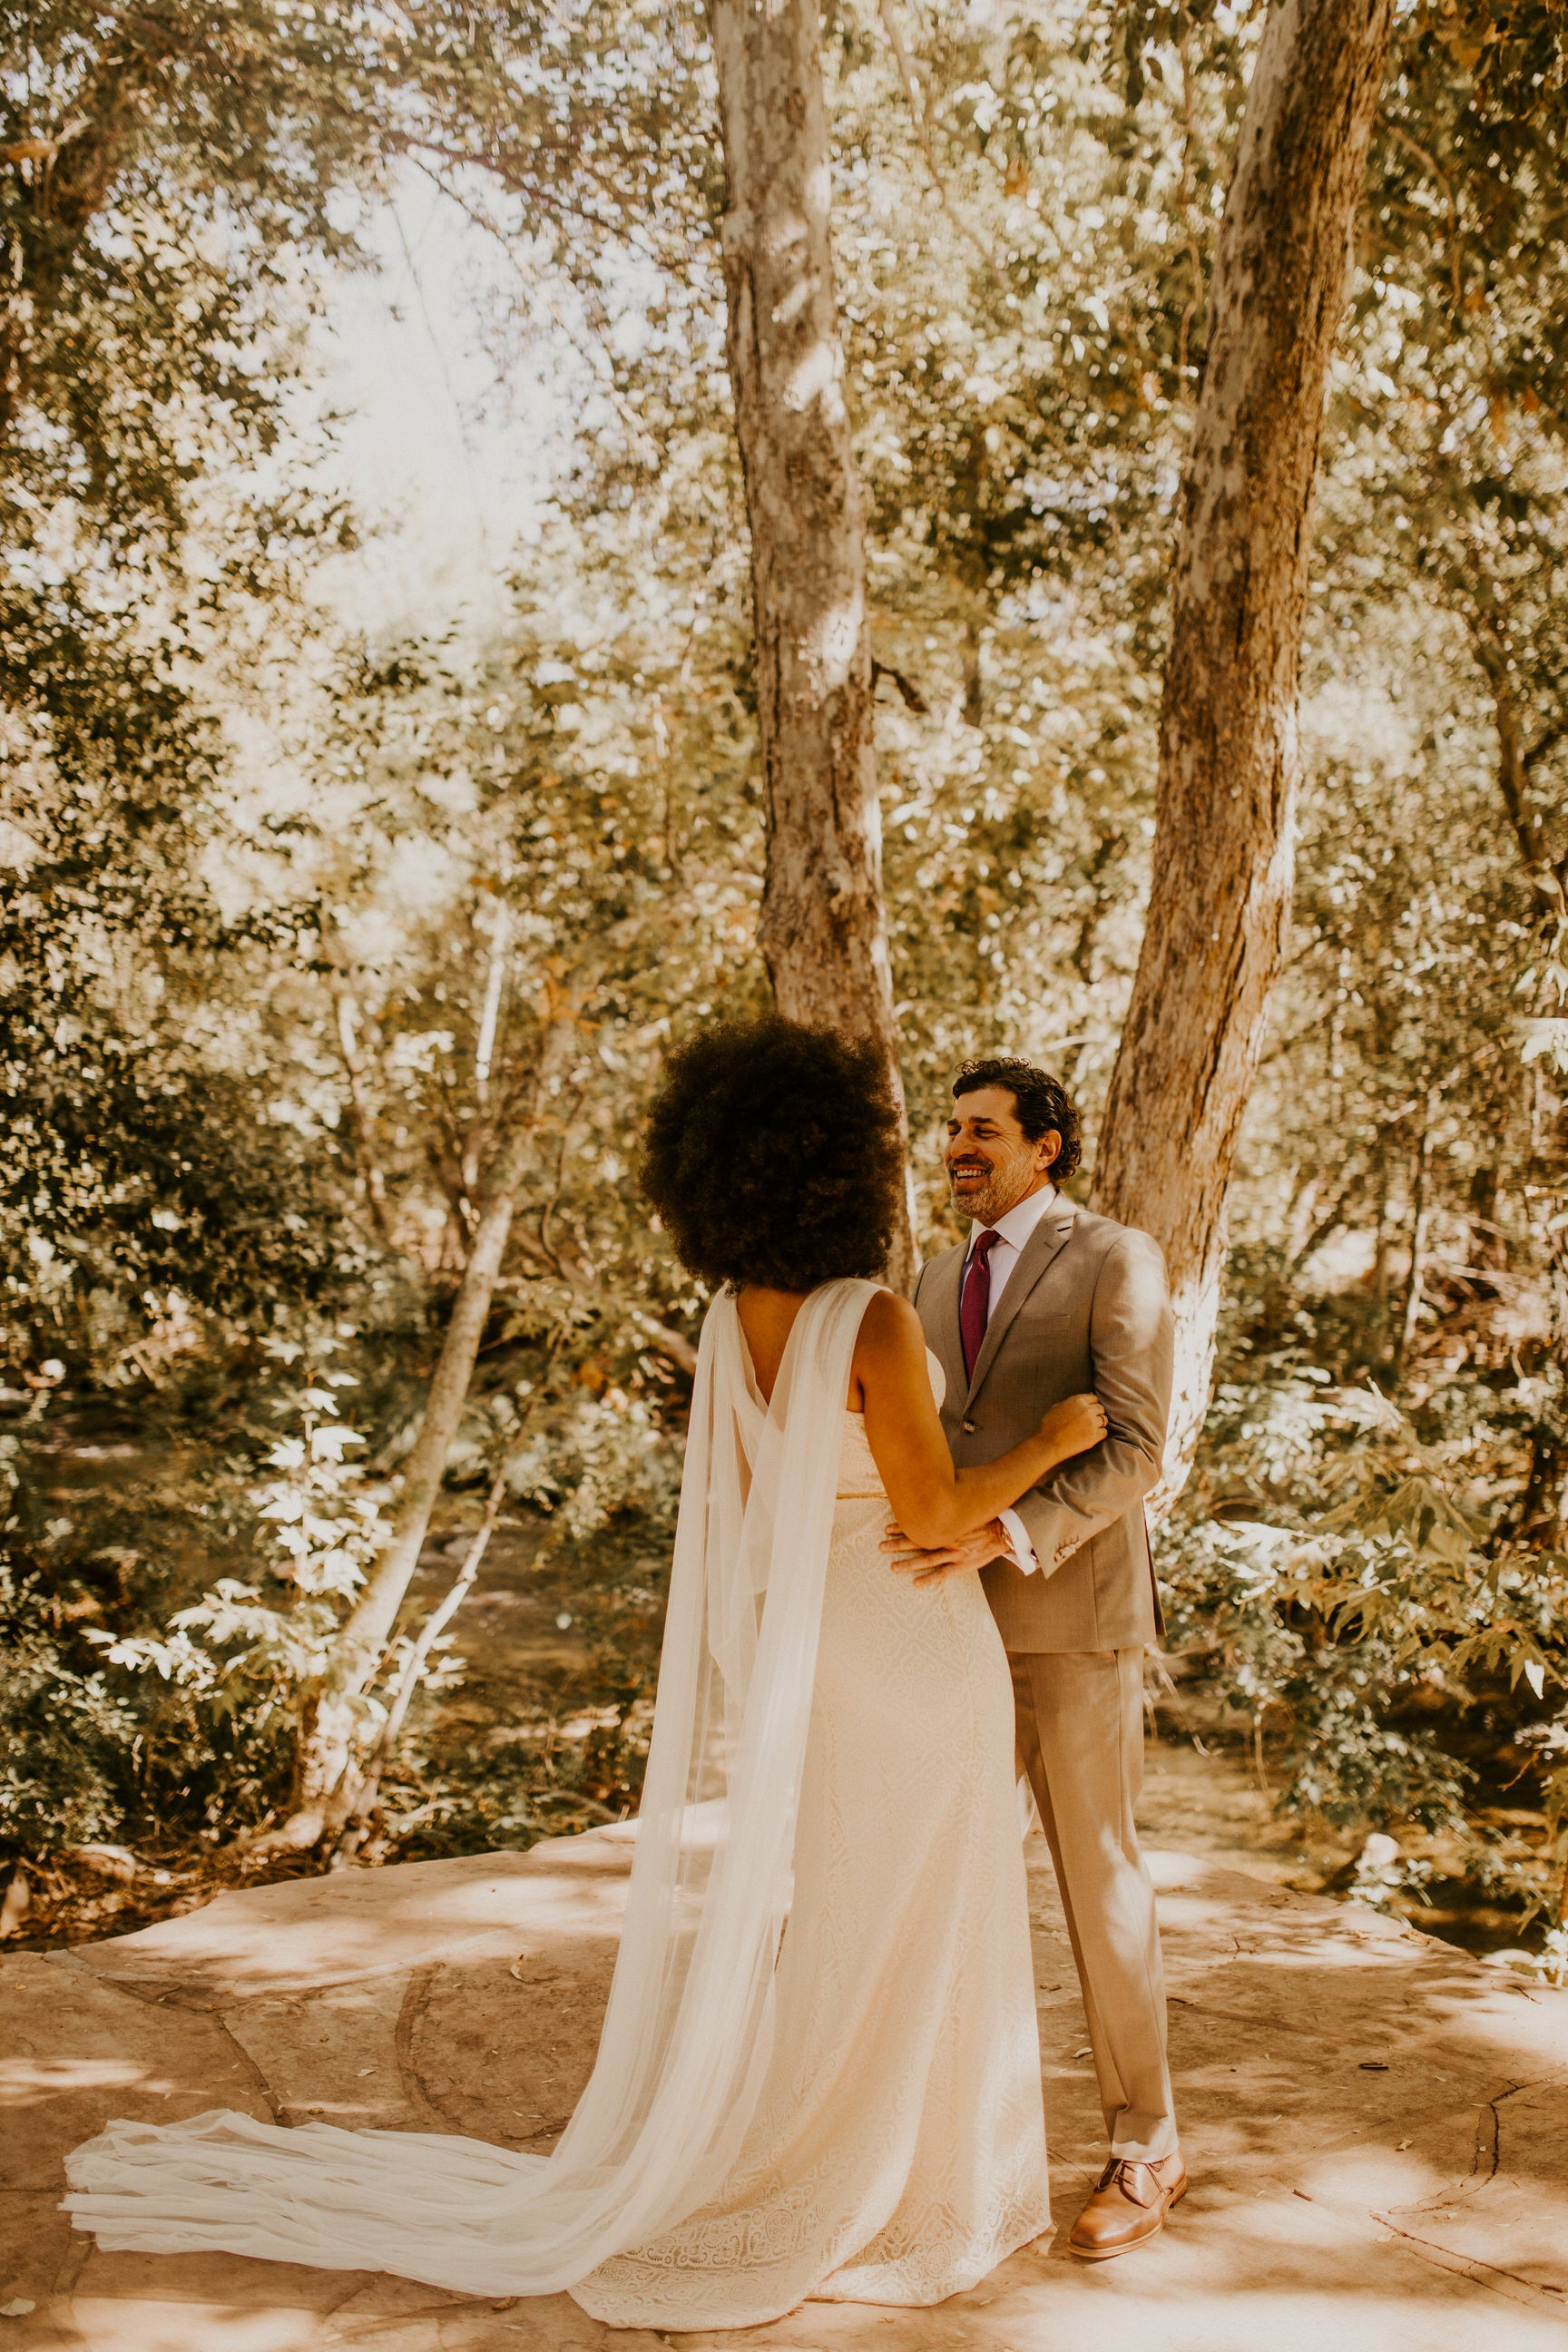 eco-friendly wedding cape for destination elopement outside